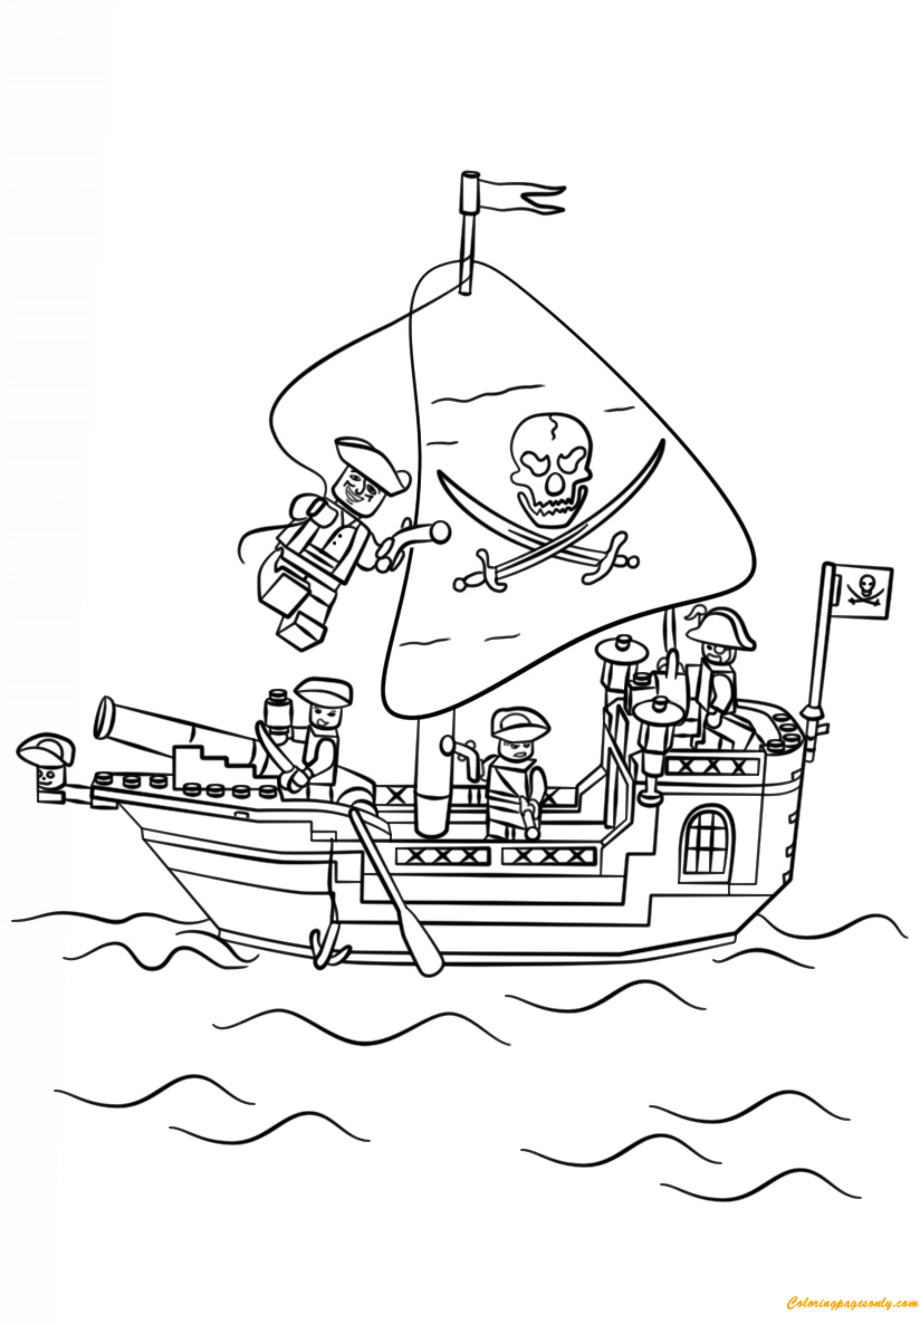 police boat coloring page ship paw patrol coloring pages print coloring 2019 boat police coloring page